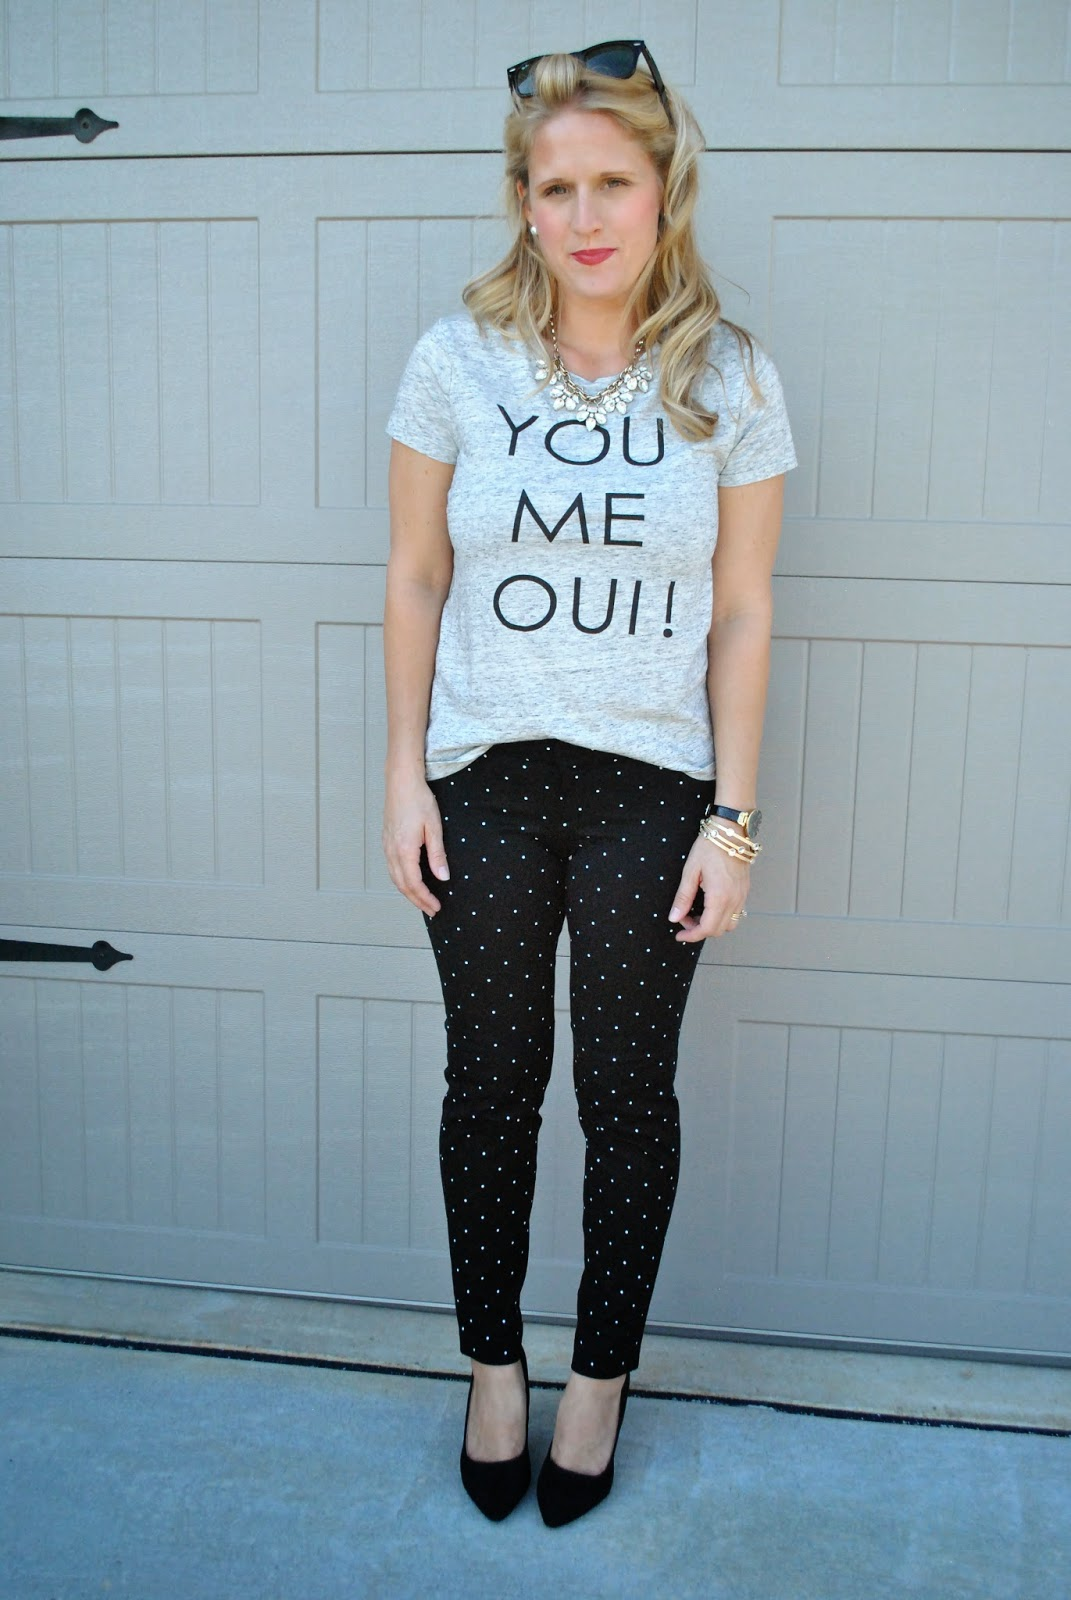 Old Navy Pixie Pants Old Navy Graphic Tee~The Army Life of An Aviators Wife